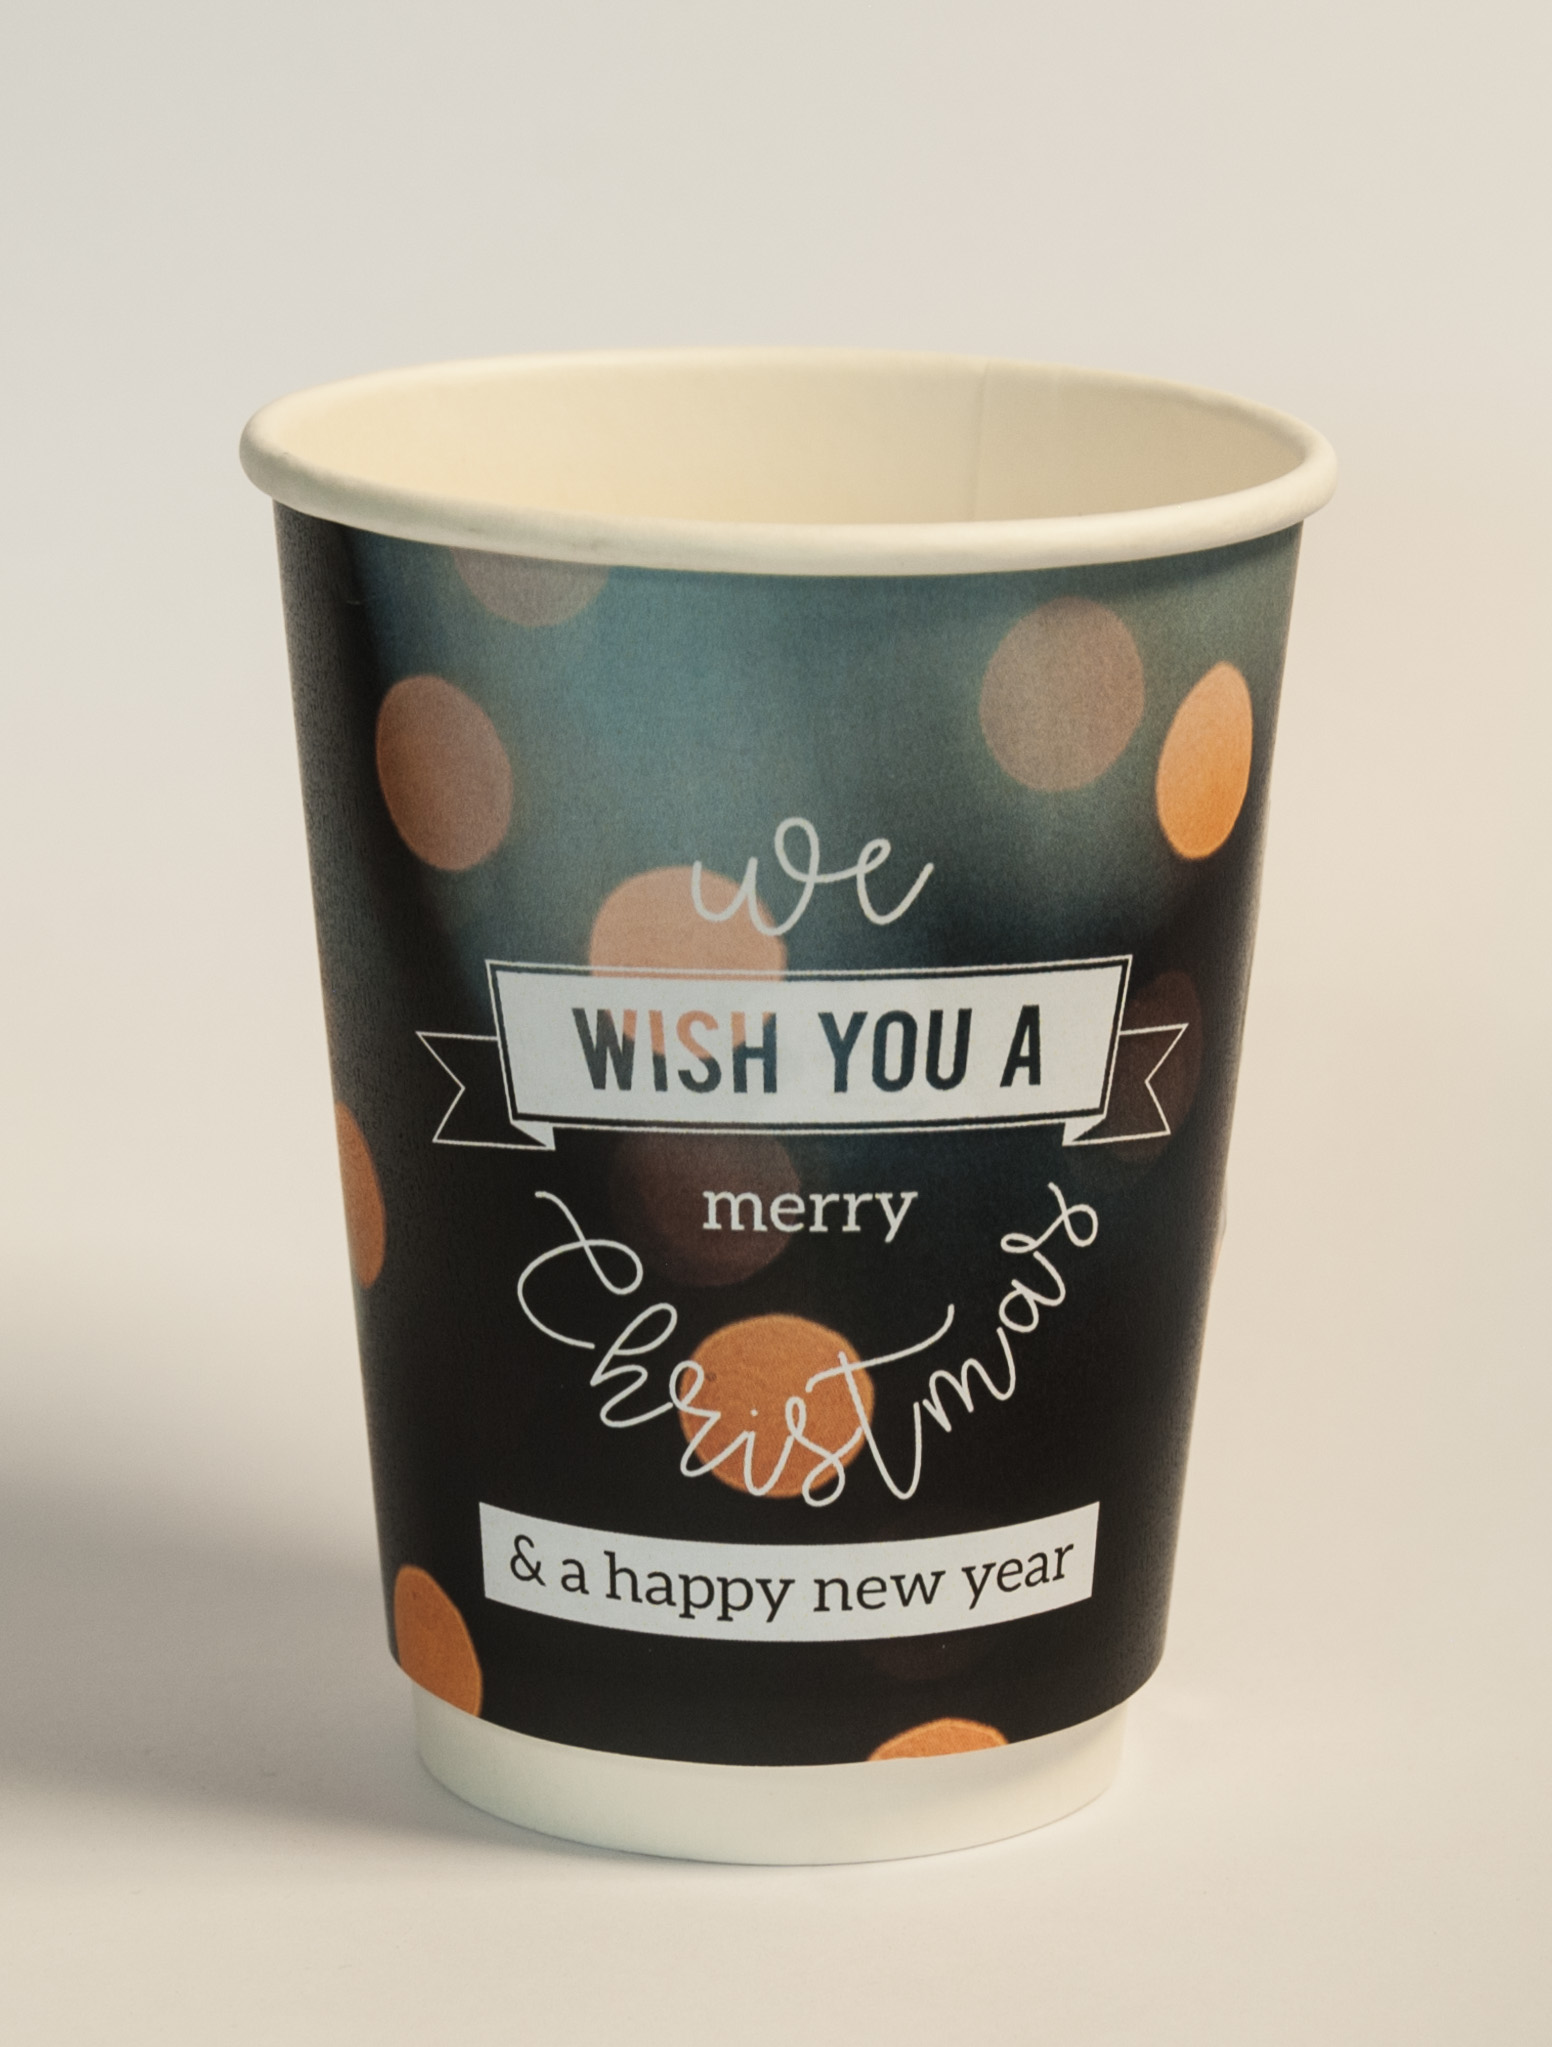 Christmas seasons greetings paper cup company christmas seasons greetings 028 m4hsunfo